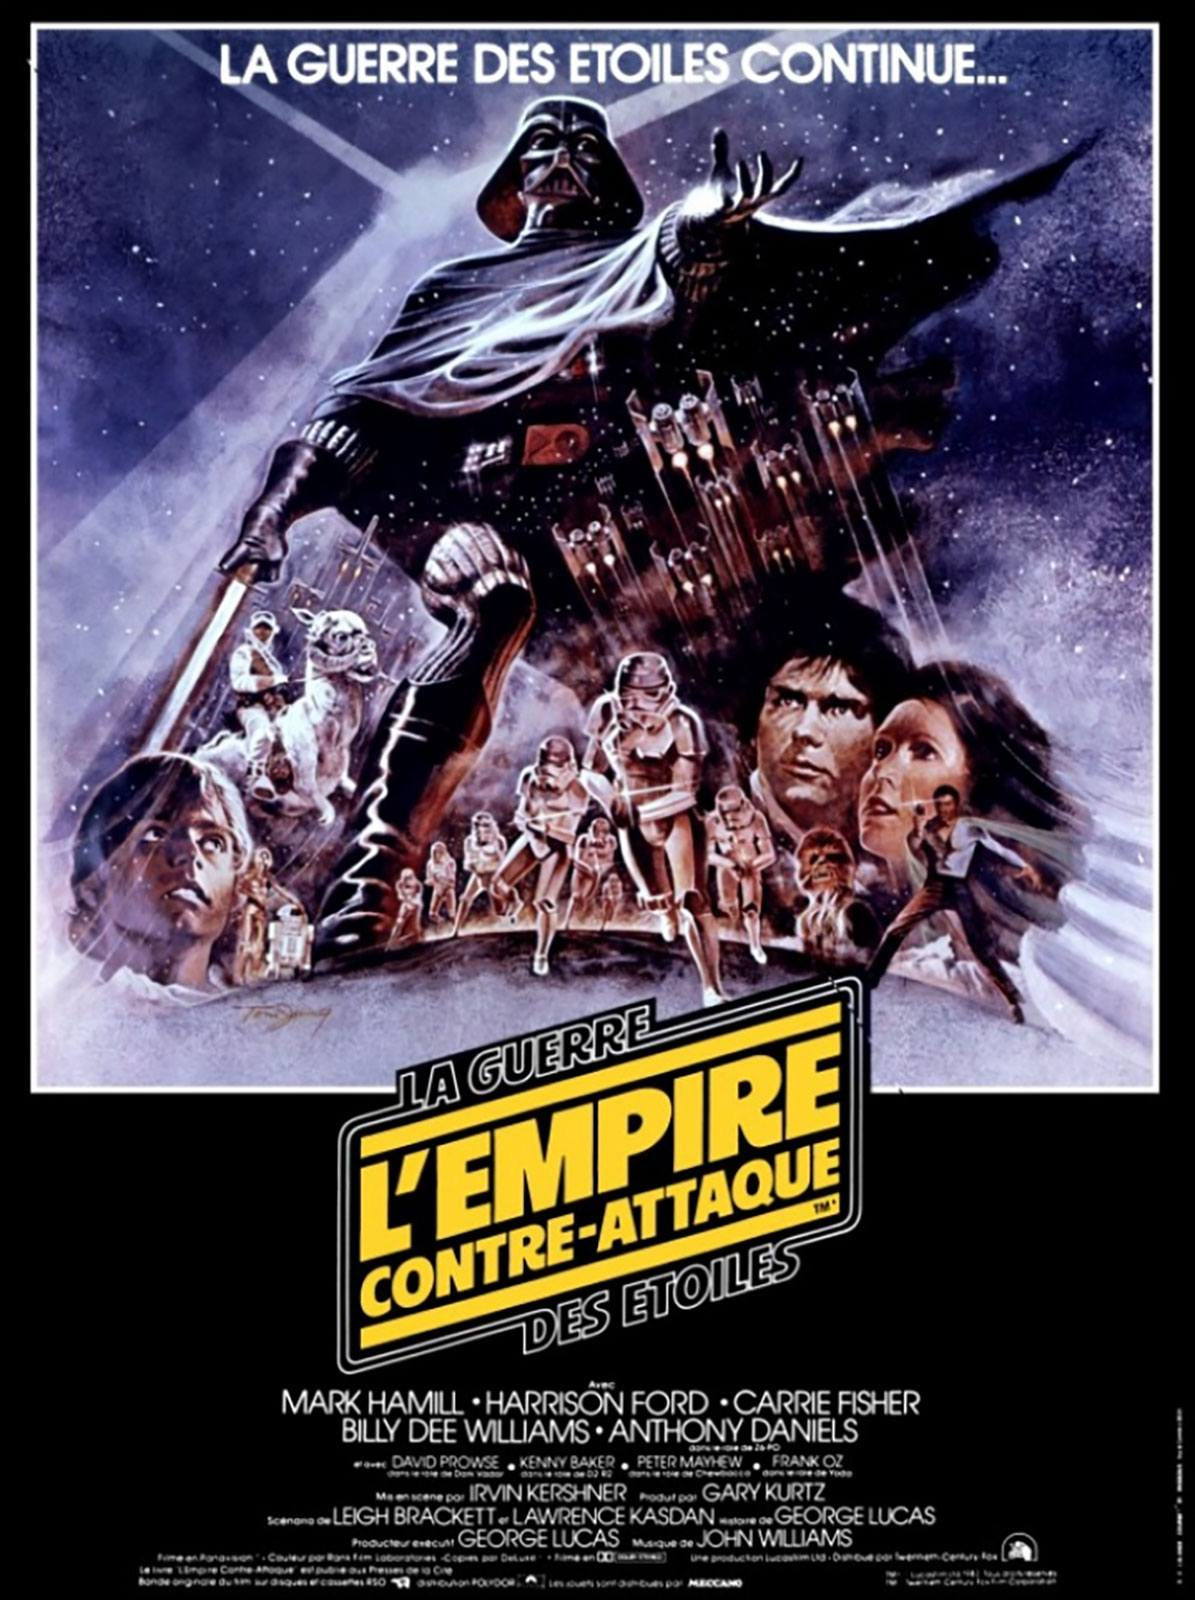 Affiche Poster star wars empire contre attaque strickes back disney lucasfilm